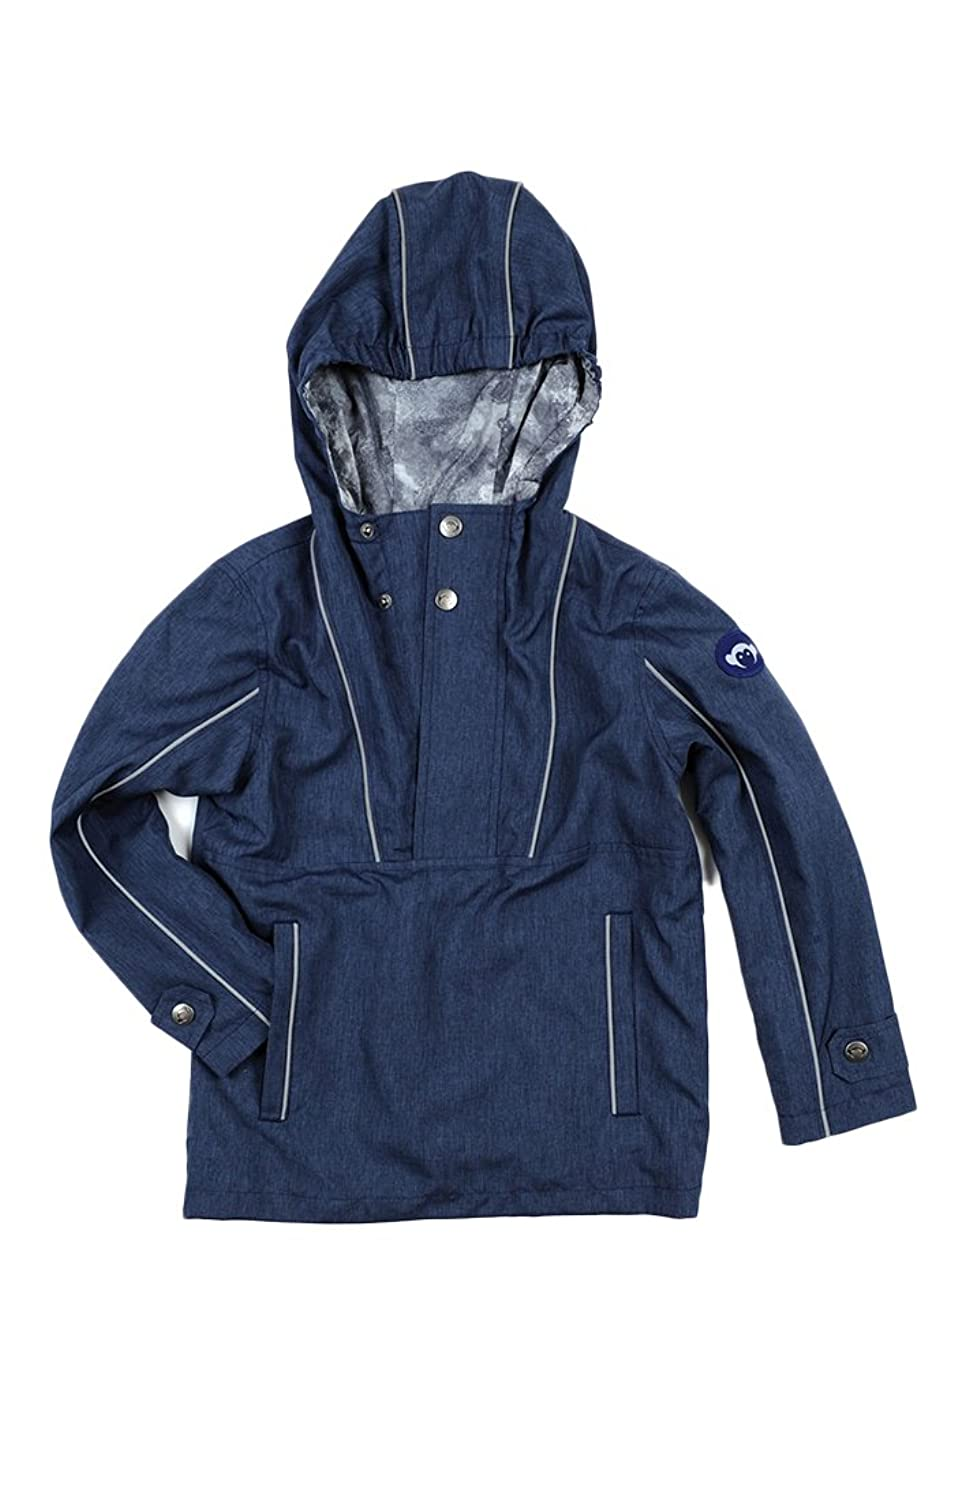 Appaman OUTERWEAR ボーイズ